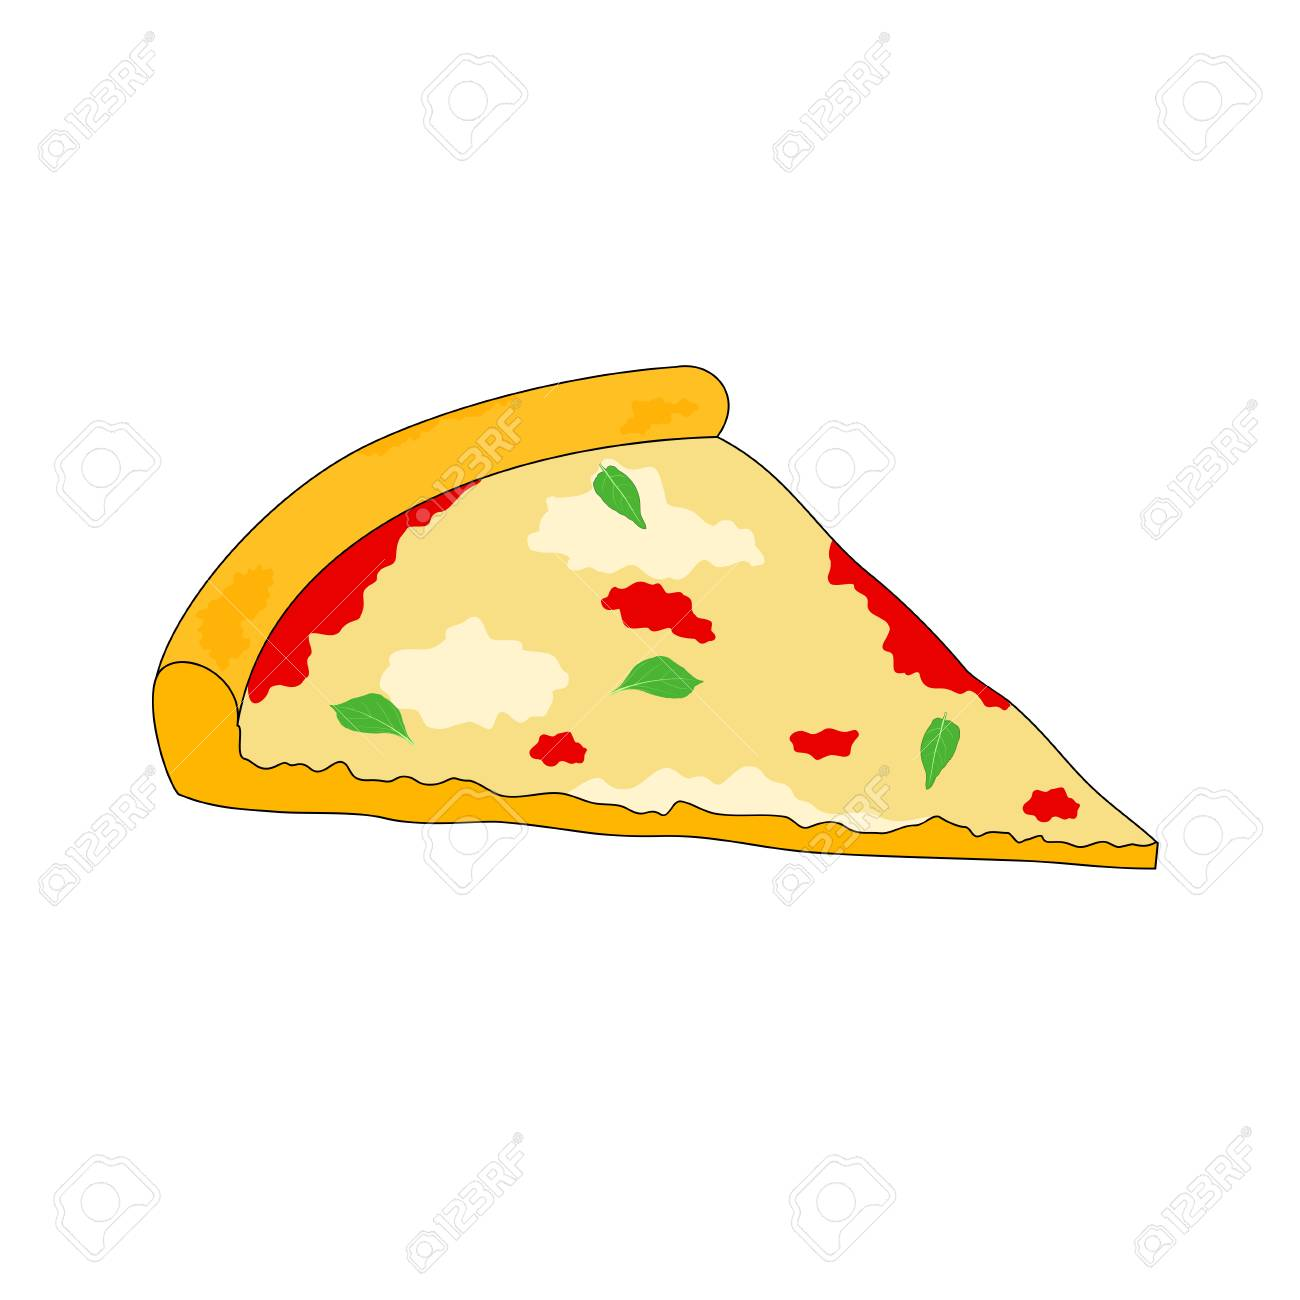 Pixel - Black And White Pizza Slice - Free Transparent PNG Clipart Images  Download